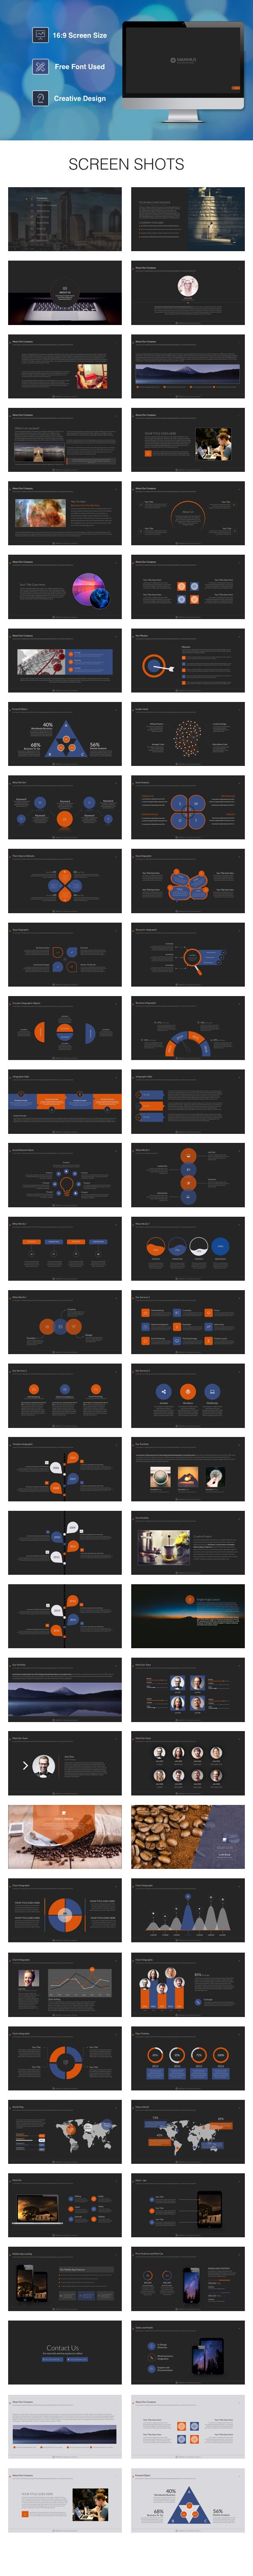 Maximus Powerpoint Template. Download here: http://graphicriver.net/item/maximus-powerpoint-template/15994370?ref=ksioks